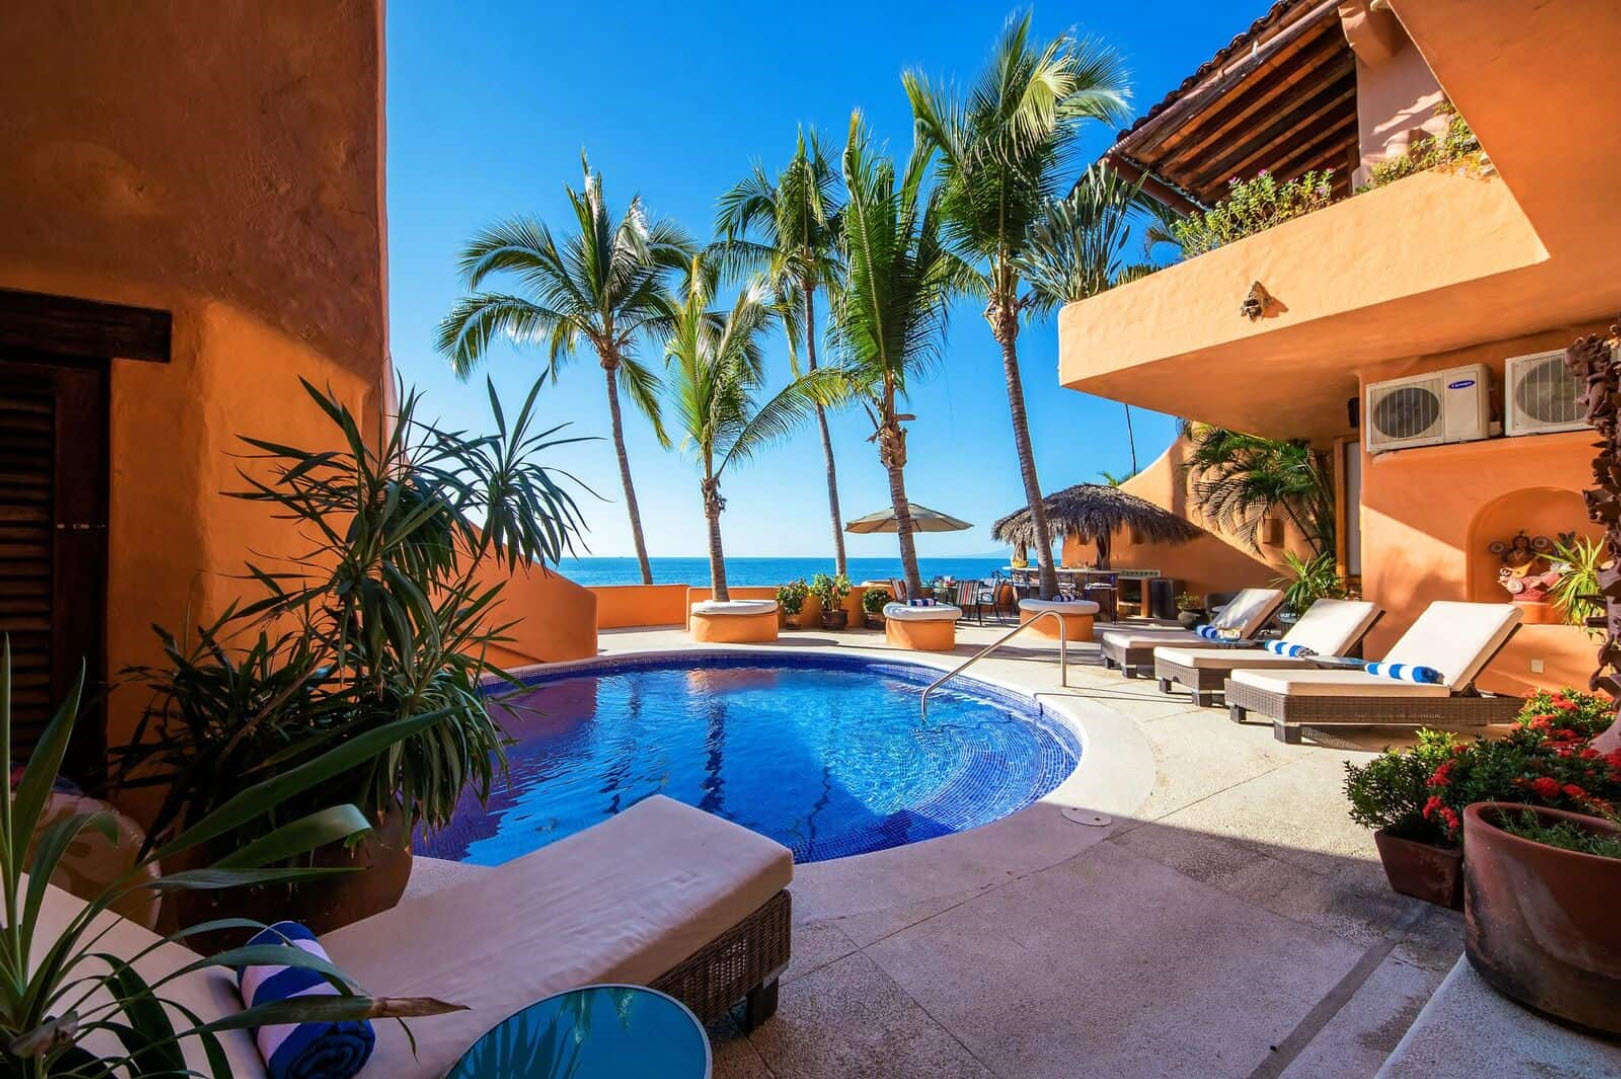 Luxury vacation rentals mexico - Puerto vallarta - Conchas chinas - No location 4 - McFuego Villa - Image 1/13